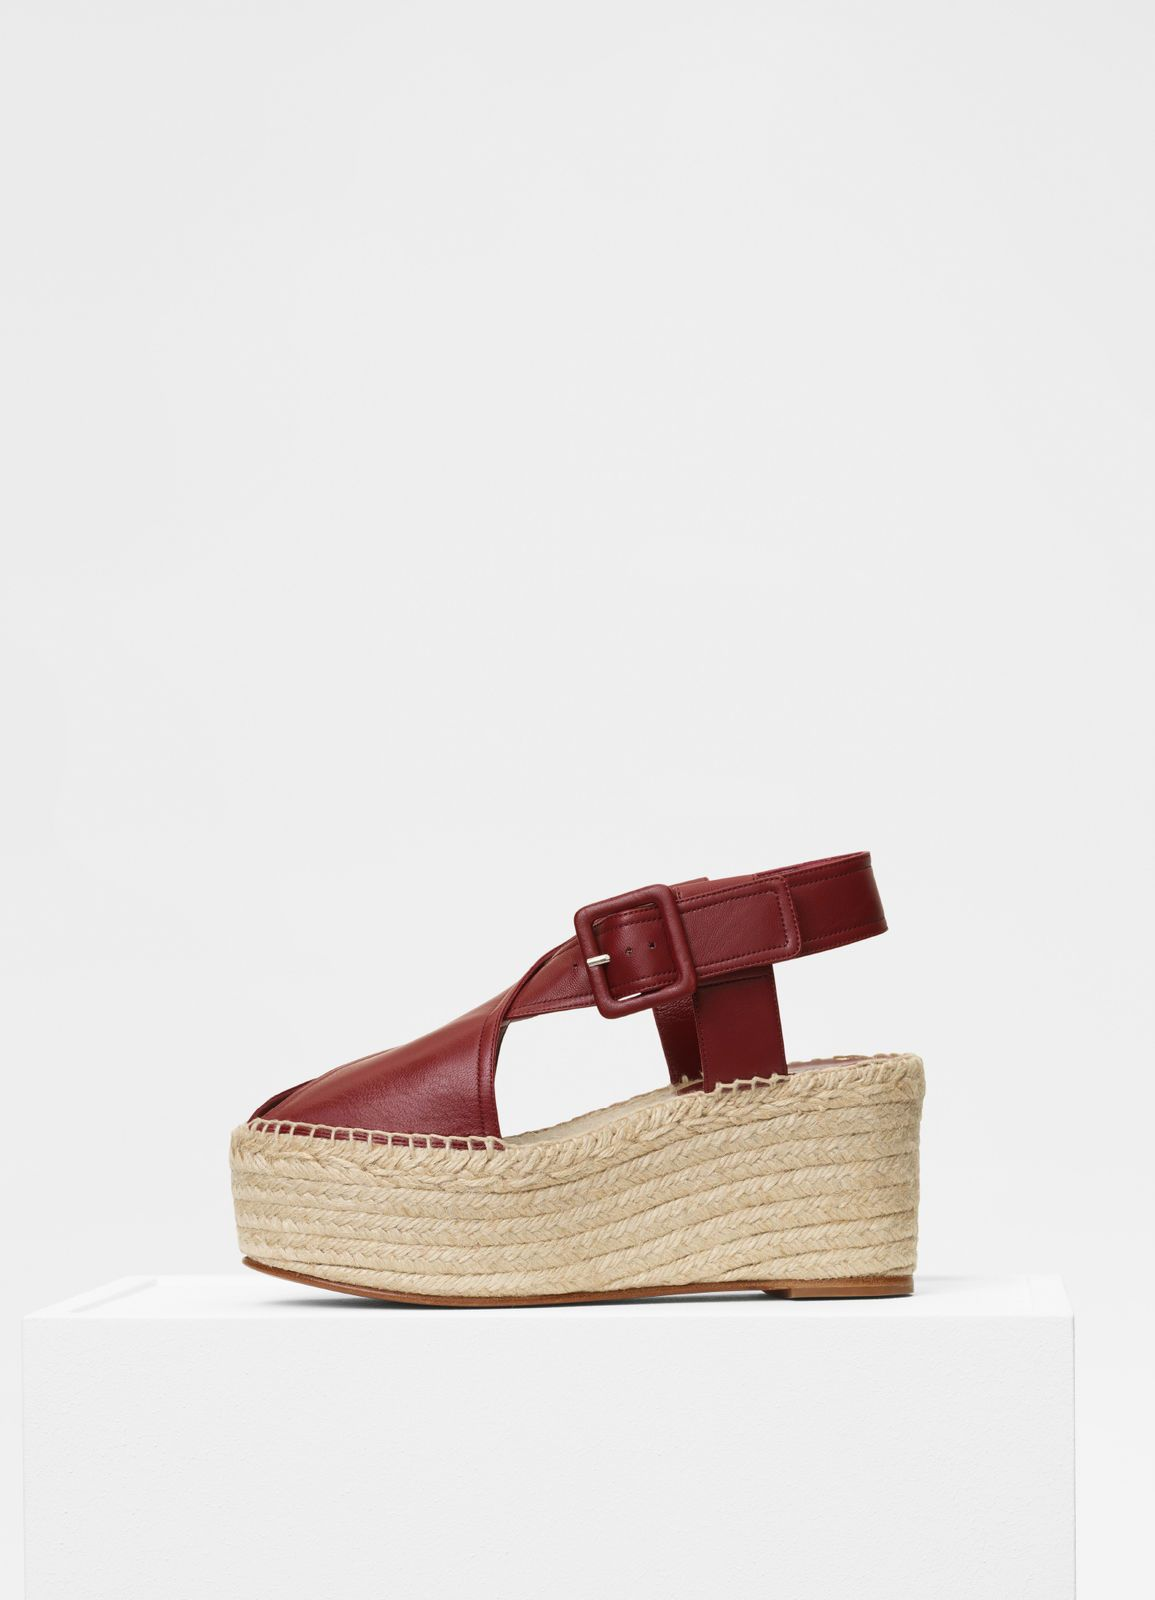 buy cheap buy Céline Snakeskin-Trimmed Wedge Sandals free shipping 100% guaranteed outlet newest 2GihCtc6x